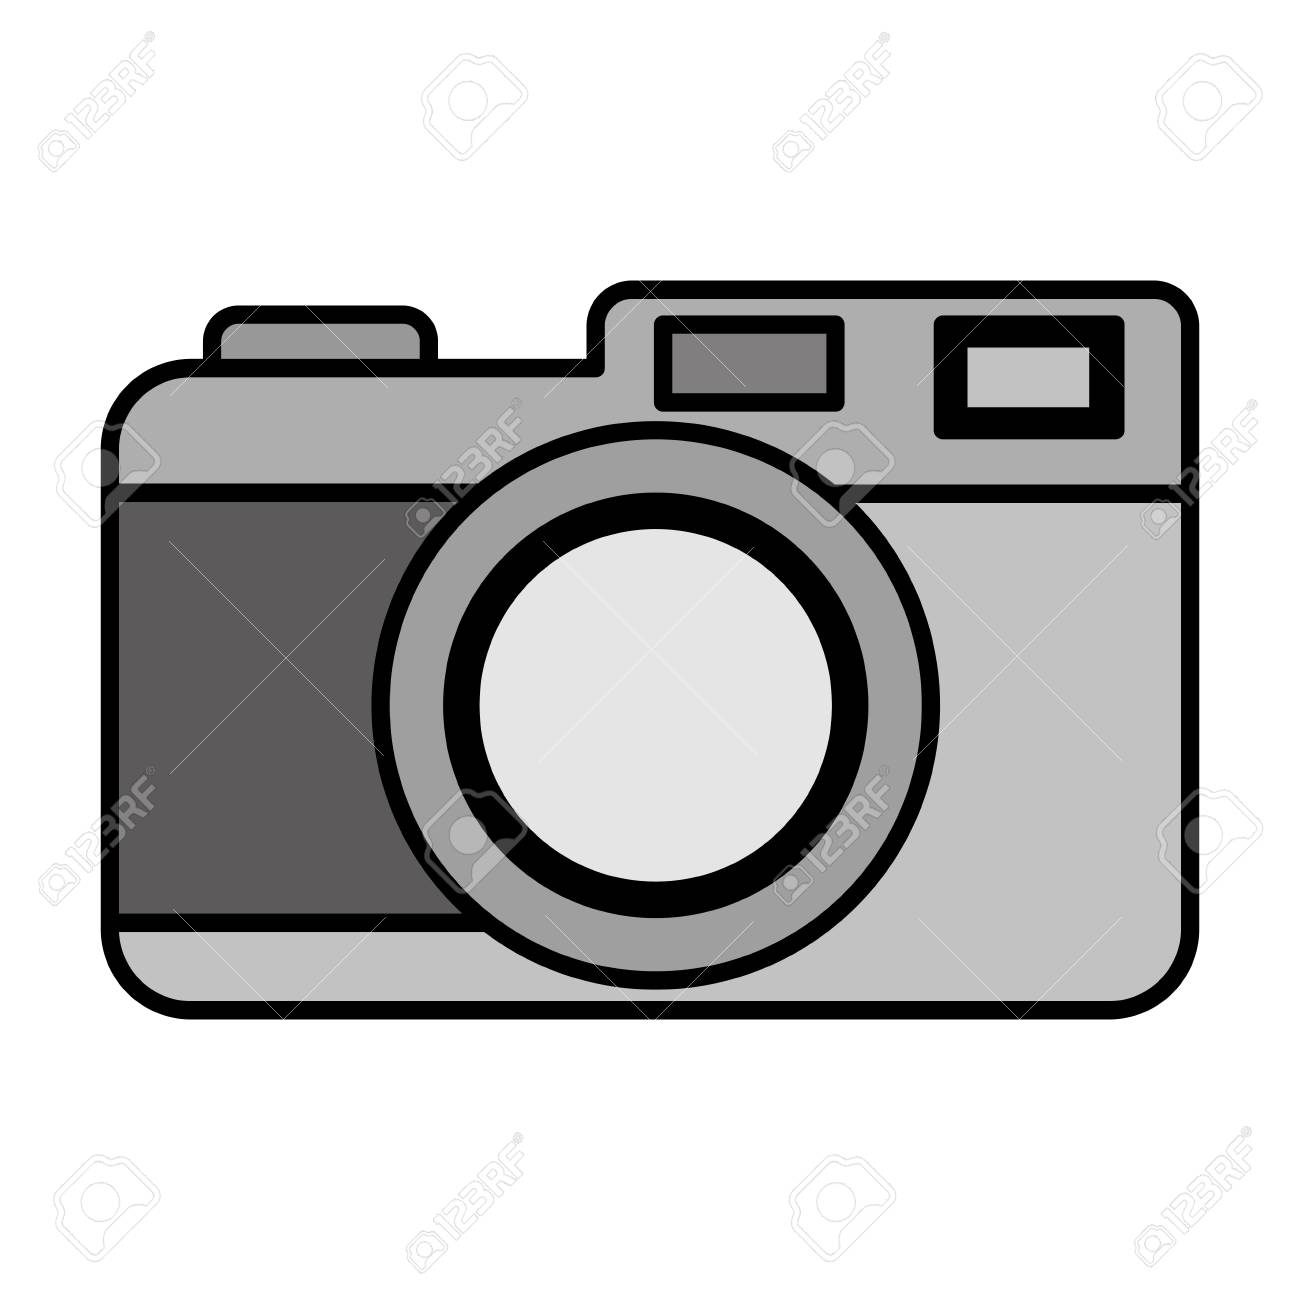 Color Digital Camera Electronic Object Technology Vector Illustration Royalty Free Cliparts Vectors And Stock Illustration Image 111770466